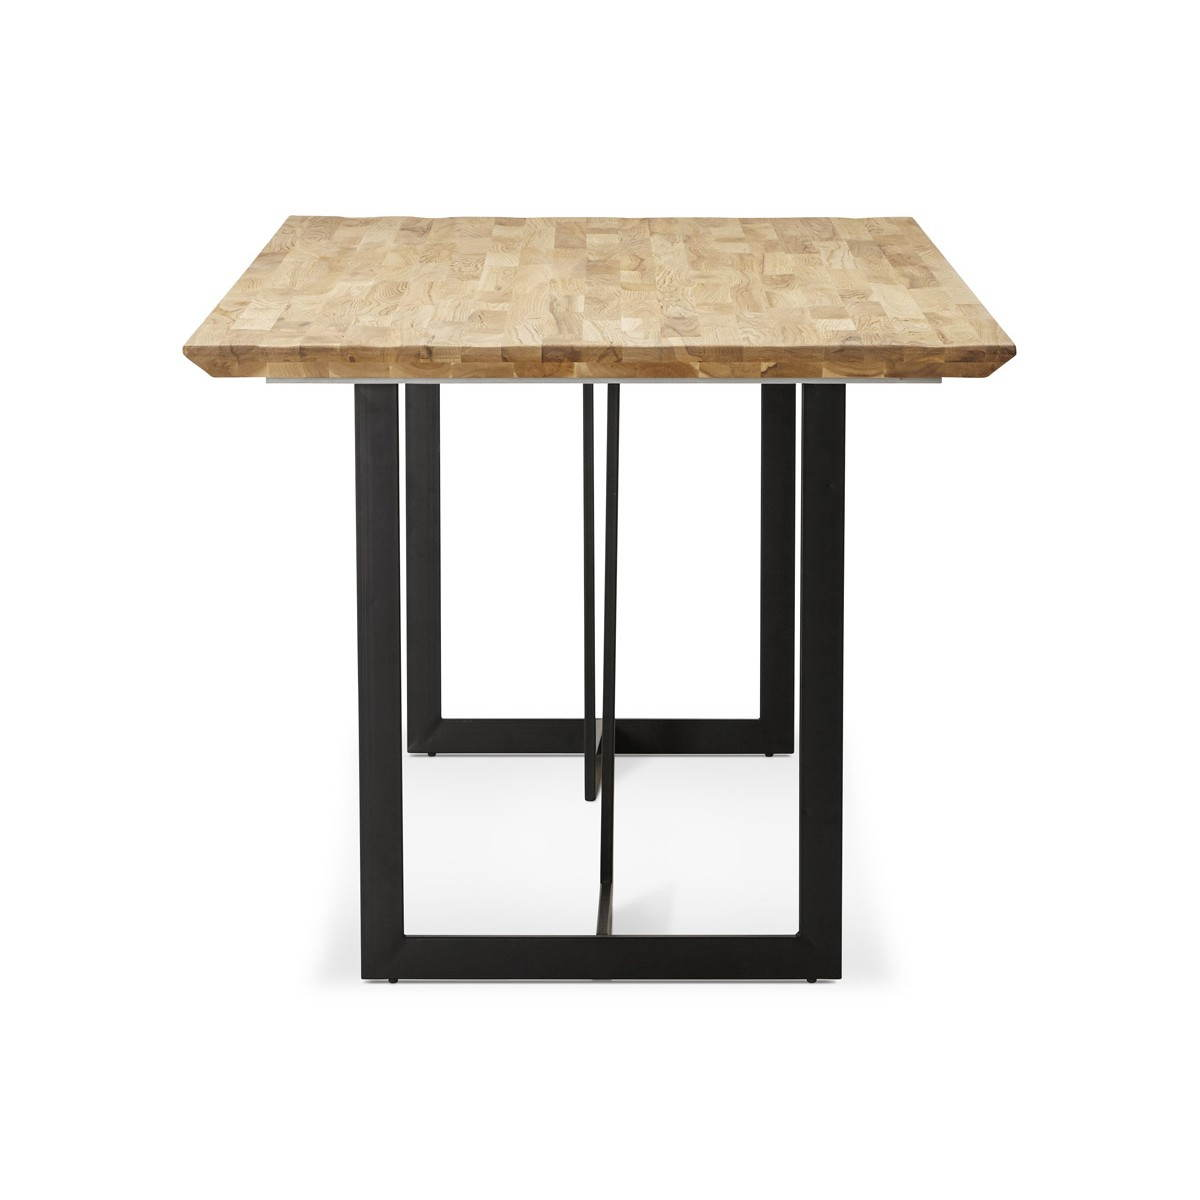 Table moderne bois massif stunning salon en bois moderne Table a manger rectangulaire extensible